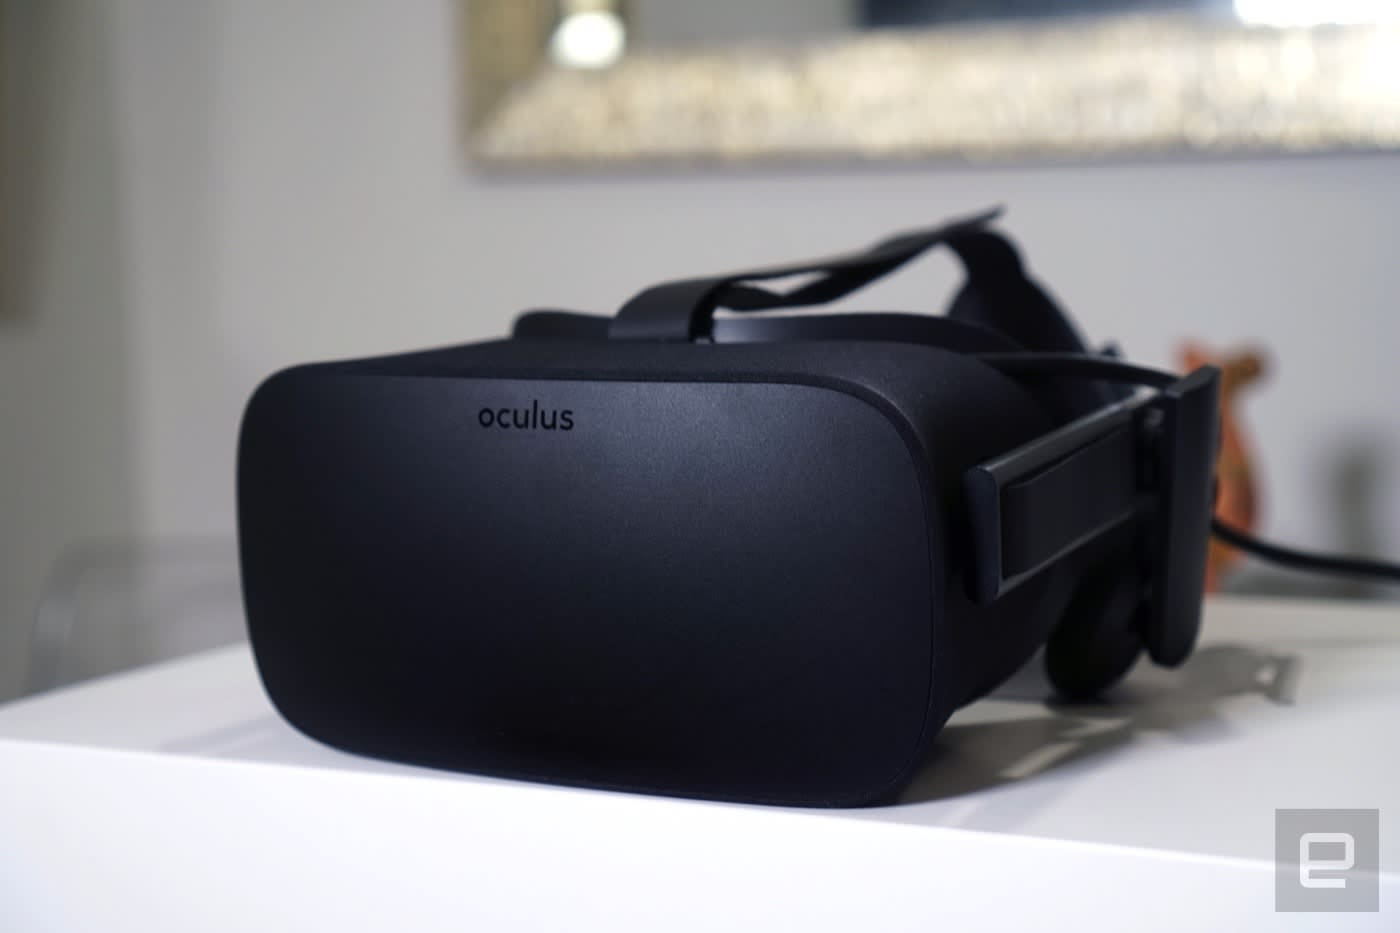 3a39f4bad553 This week in tech history  Three years of Oculus figuring out VR